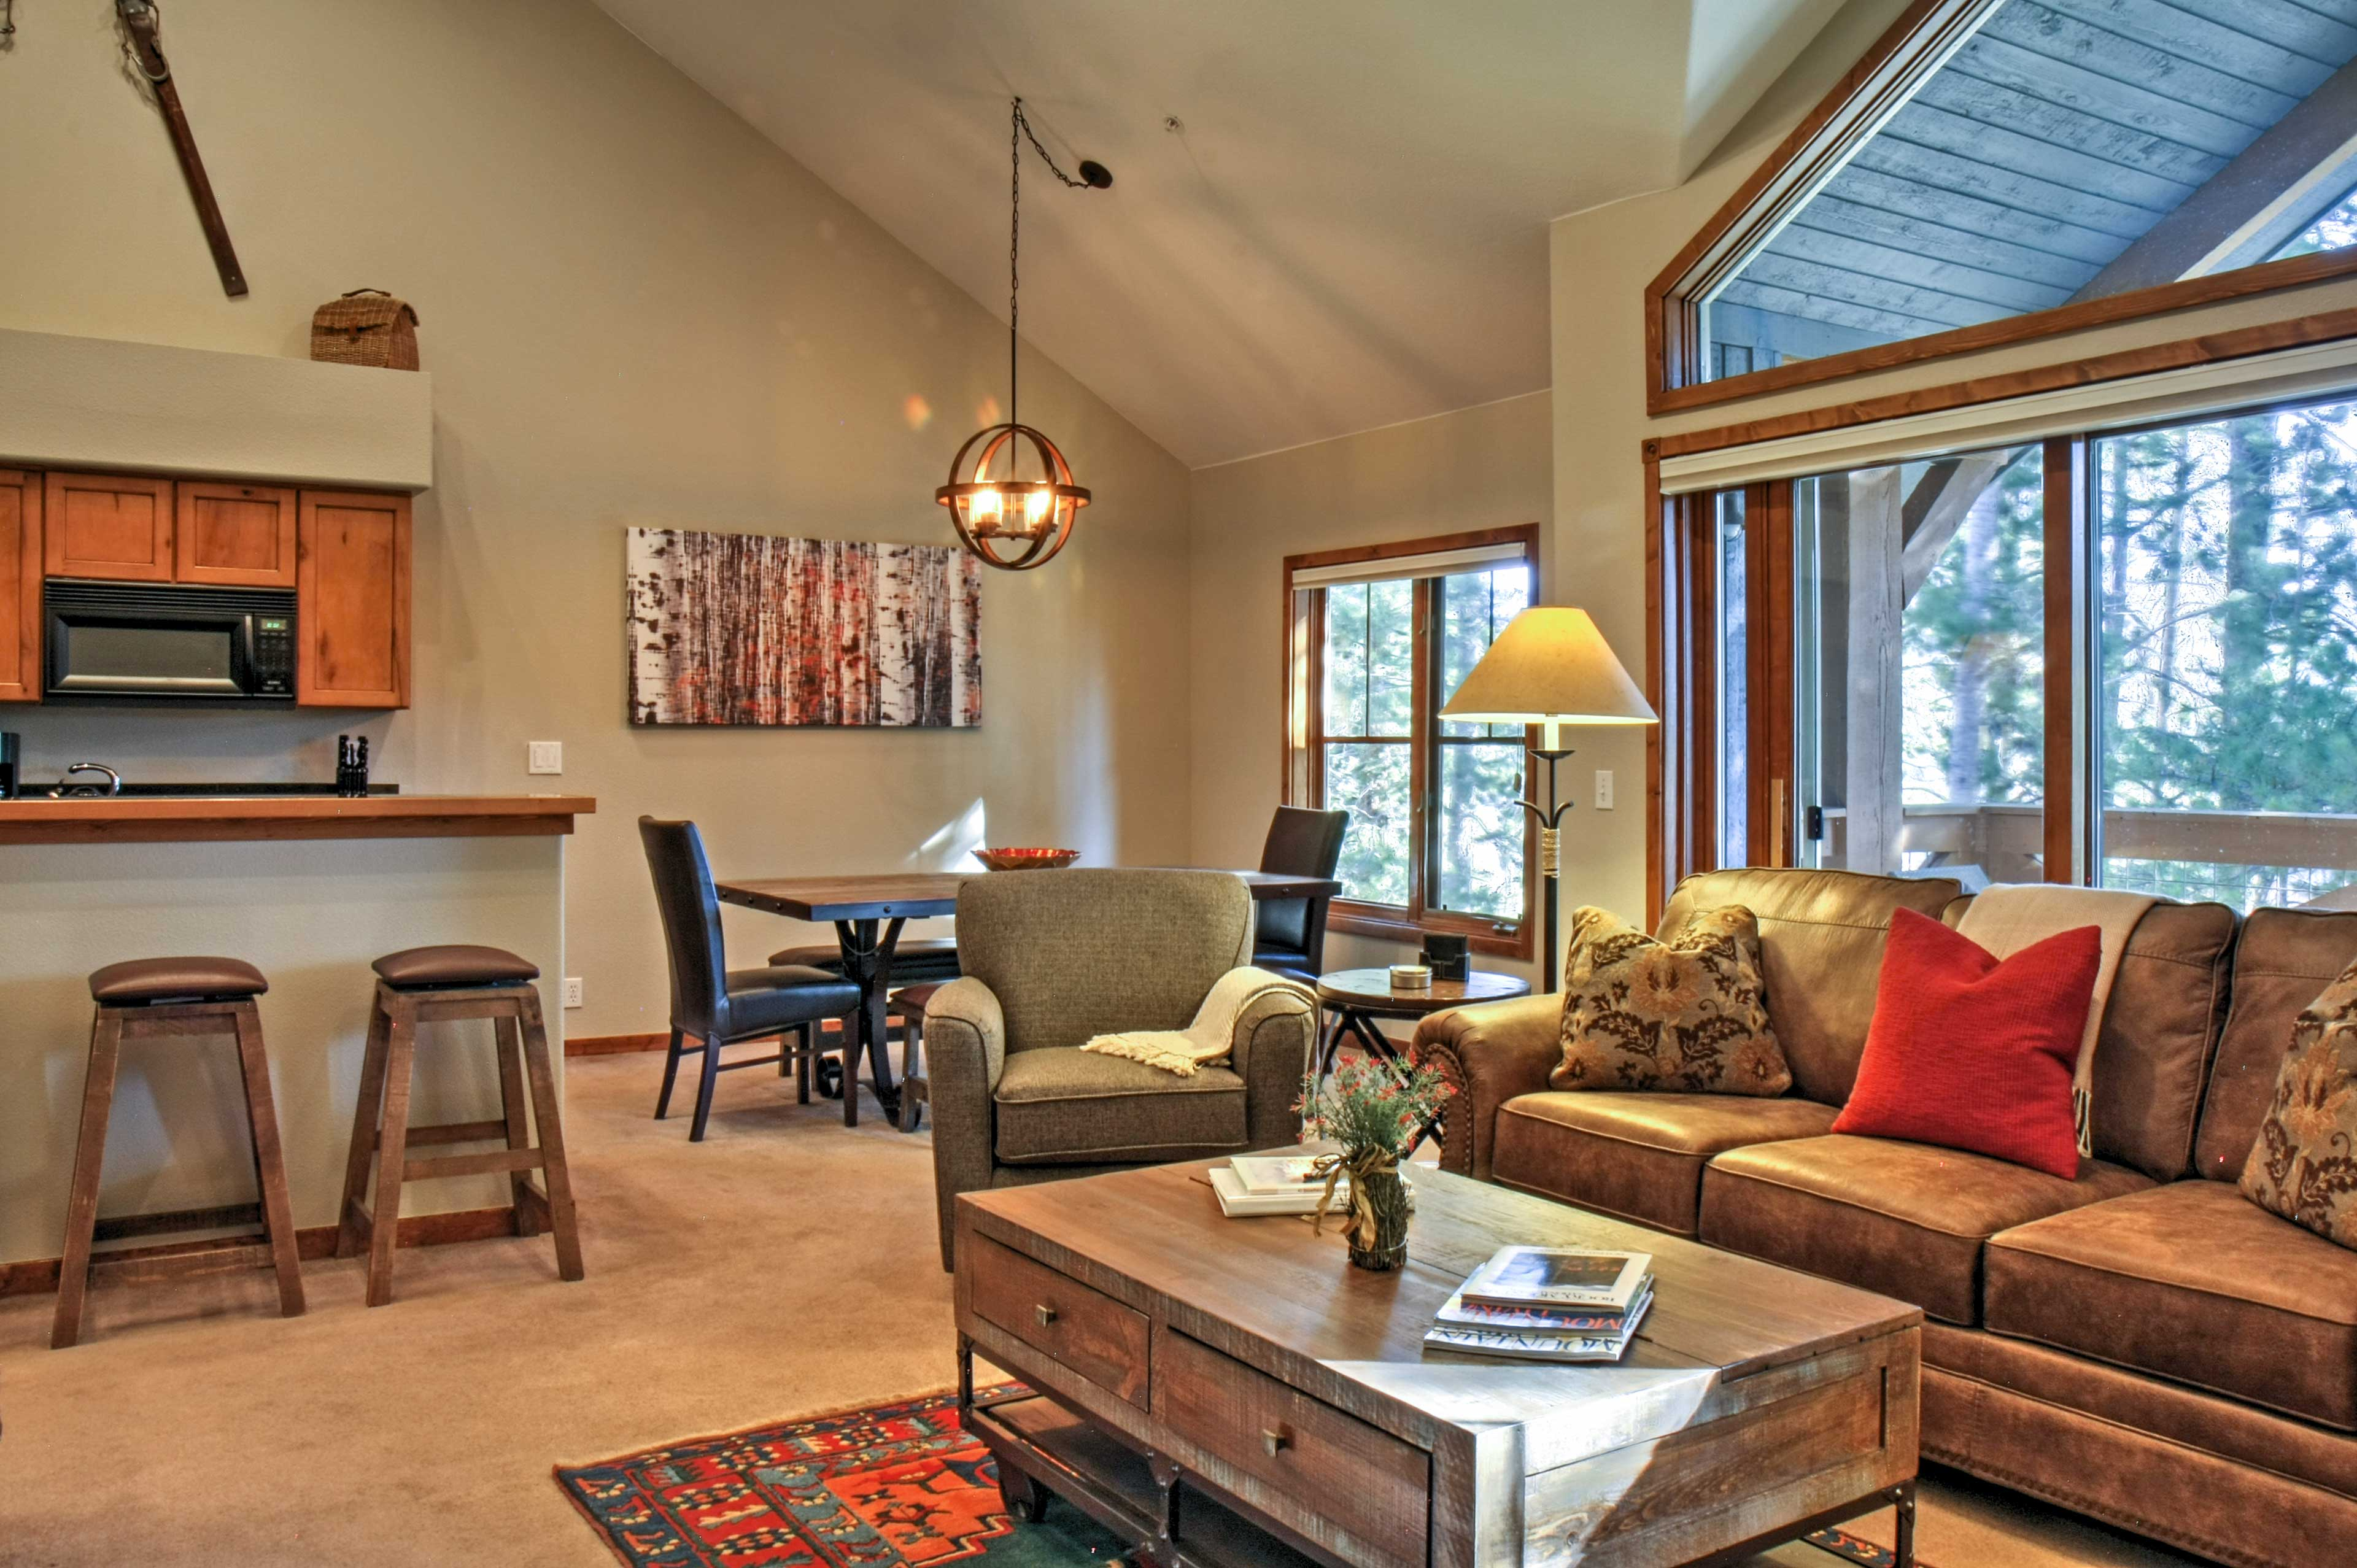 The large windows allow natural light to pour in, fostering a bright atmosphere.